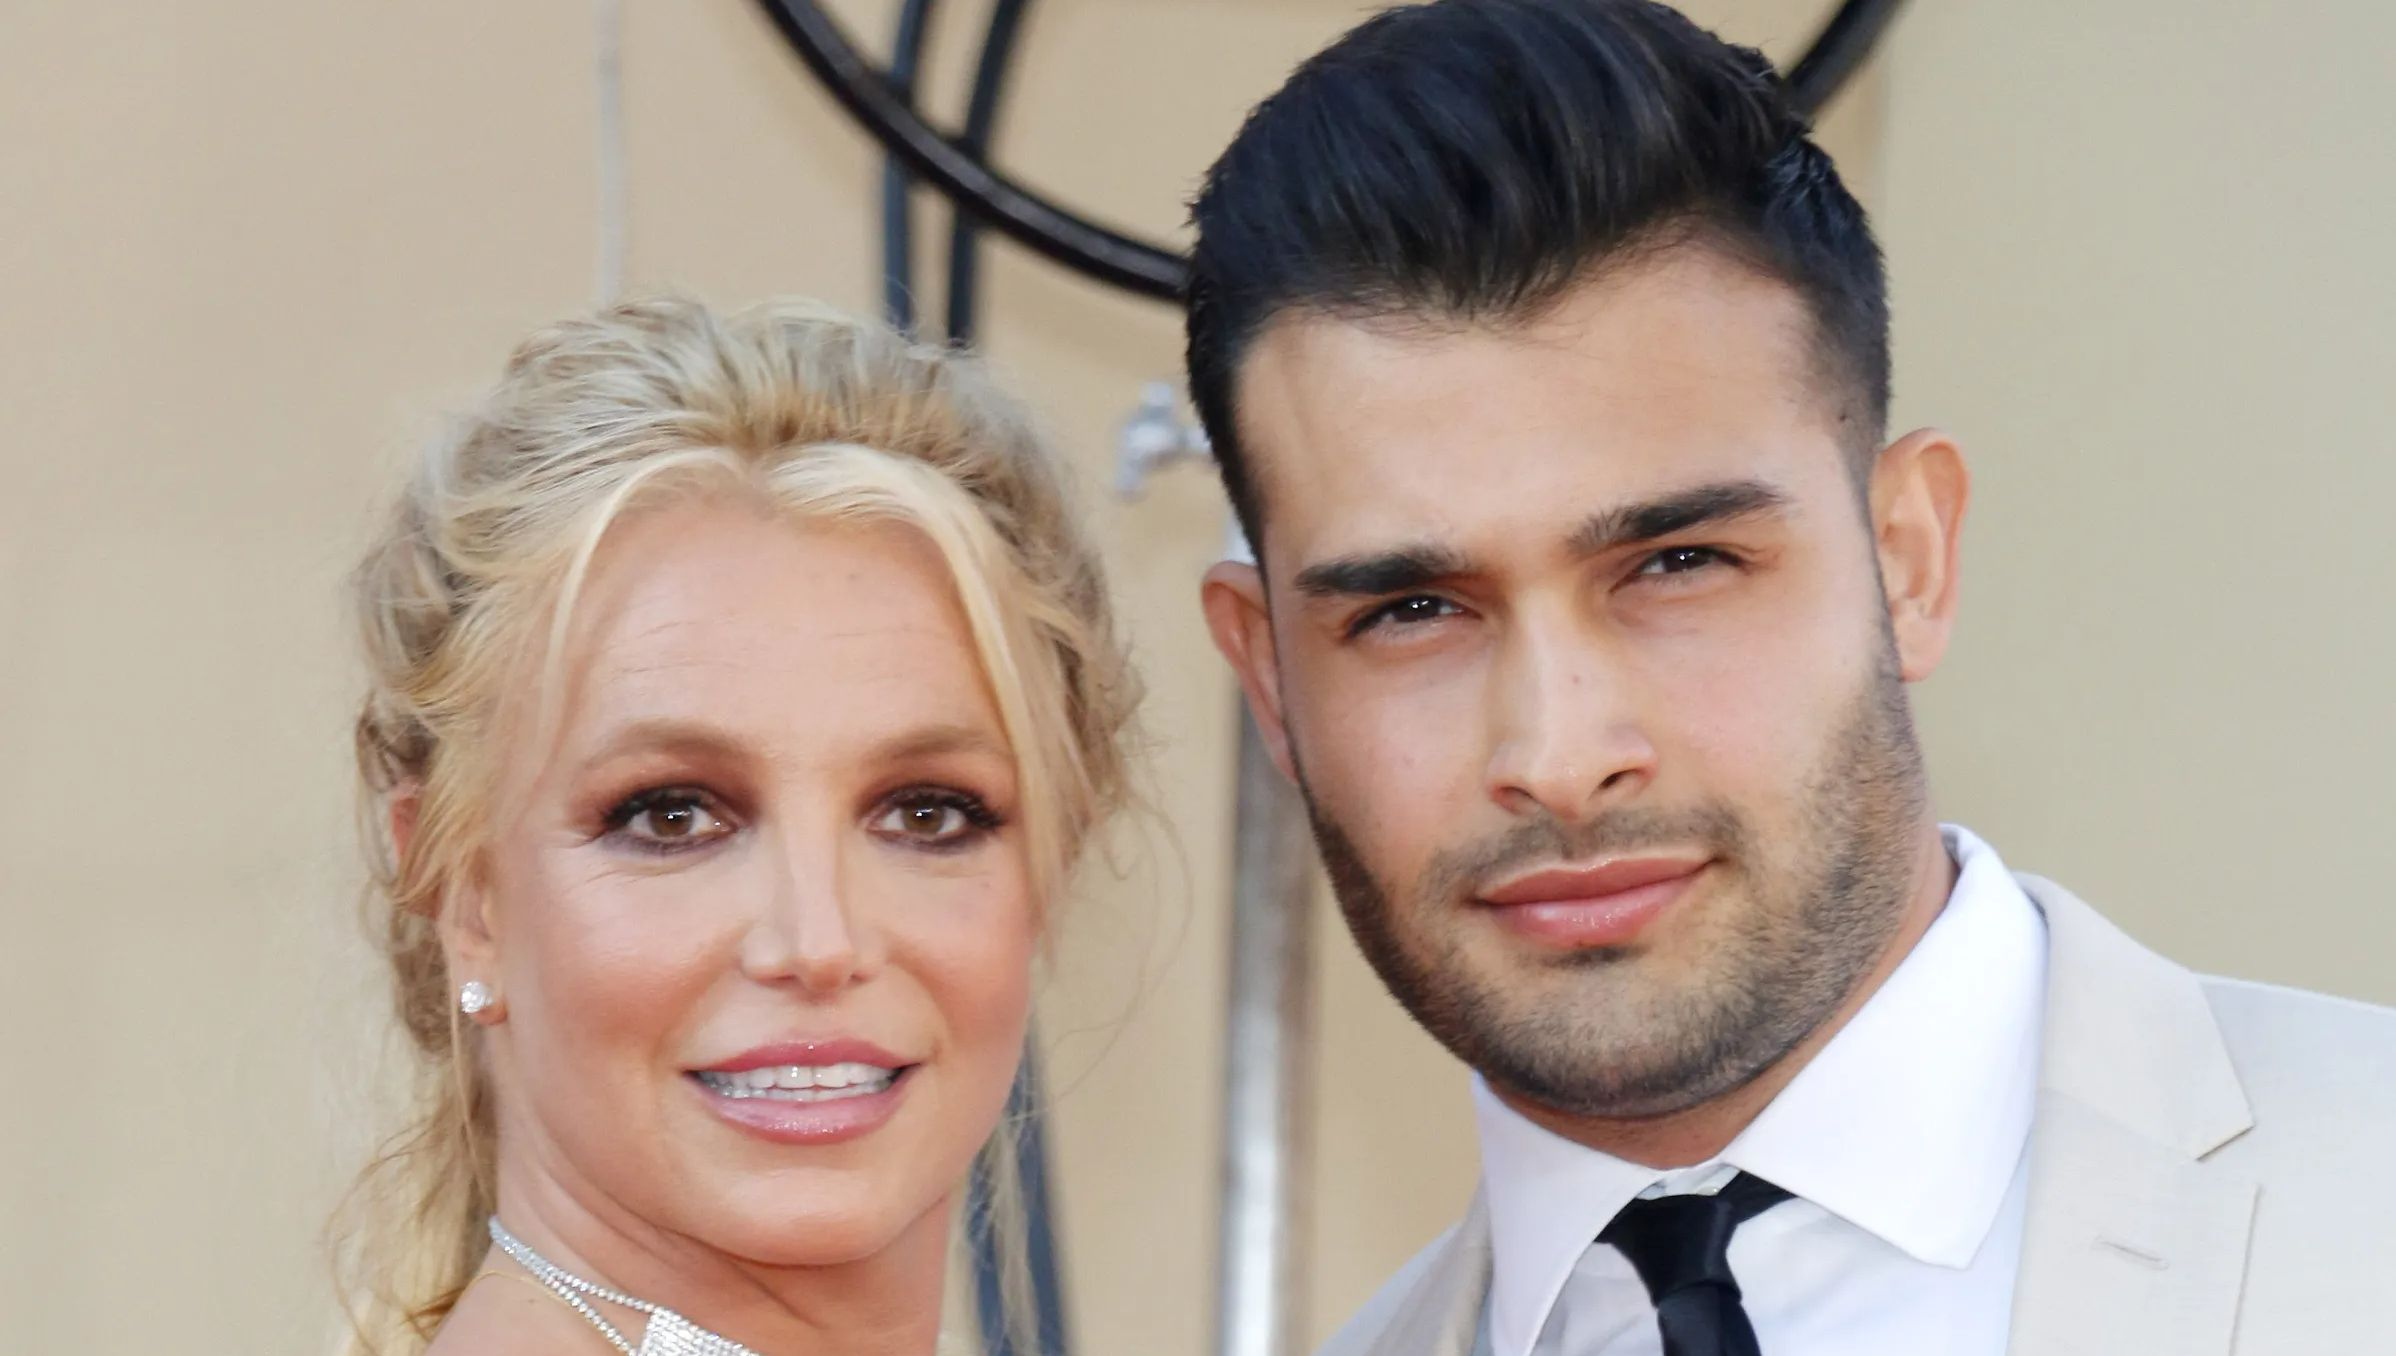 Britney Spears and boyfriend on the red carpet